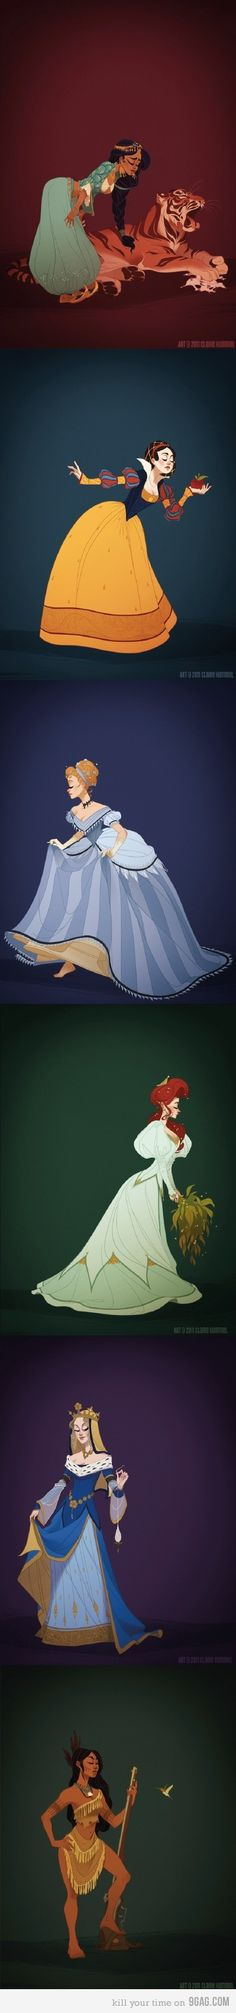 Disney Princesses in Historically Accurate Costumes